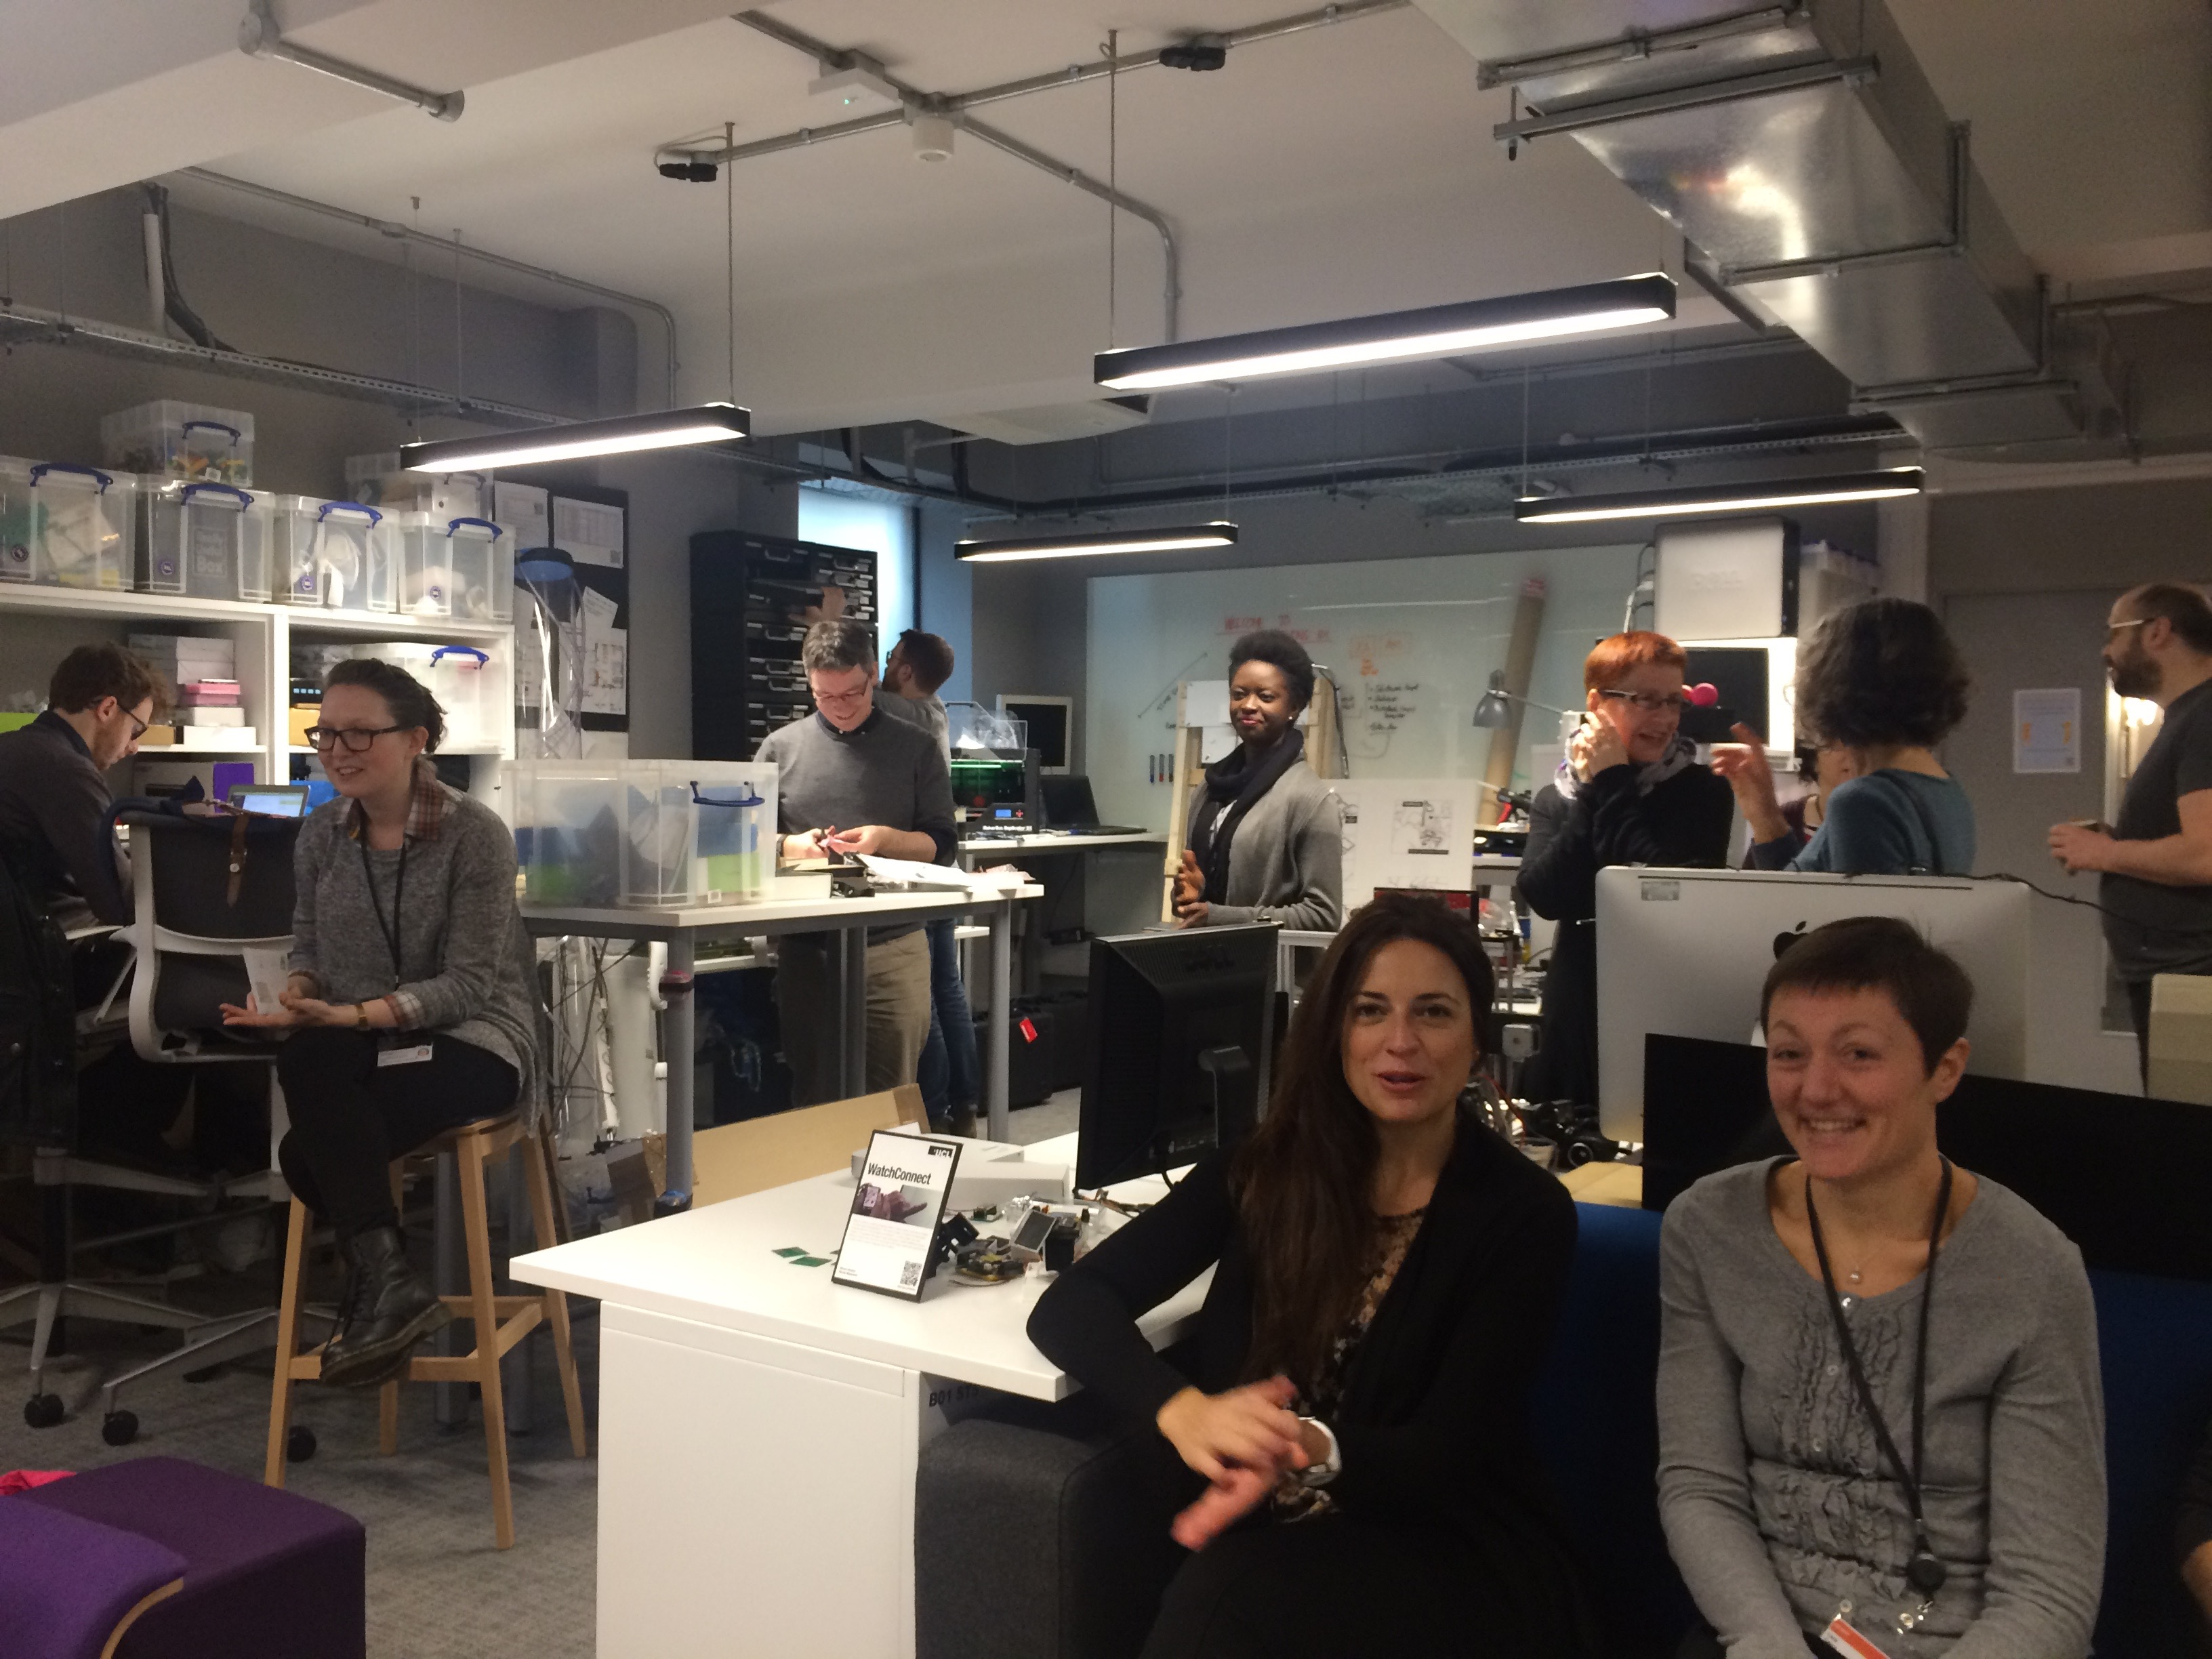 Image showing people interacting and working in the UCLIC Basement lab